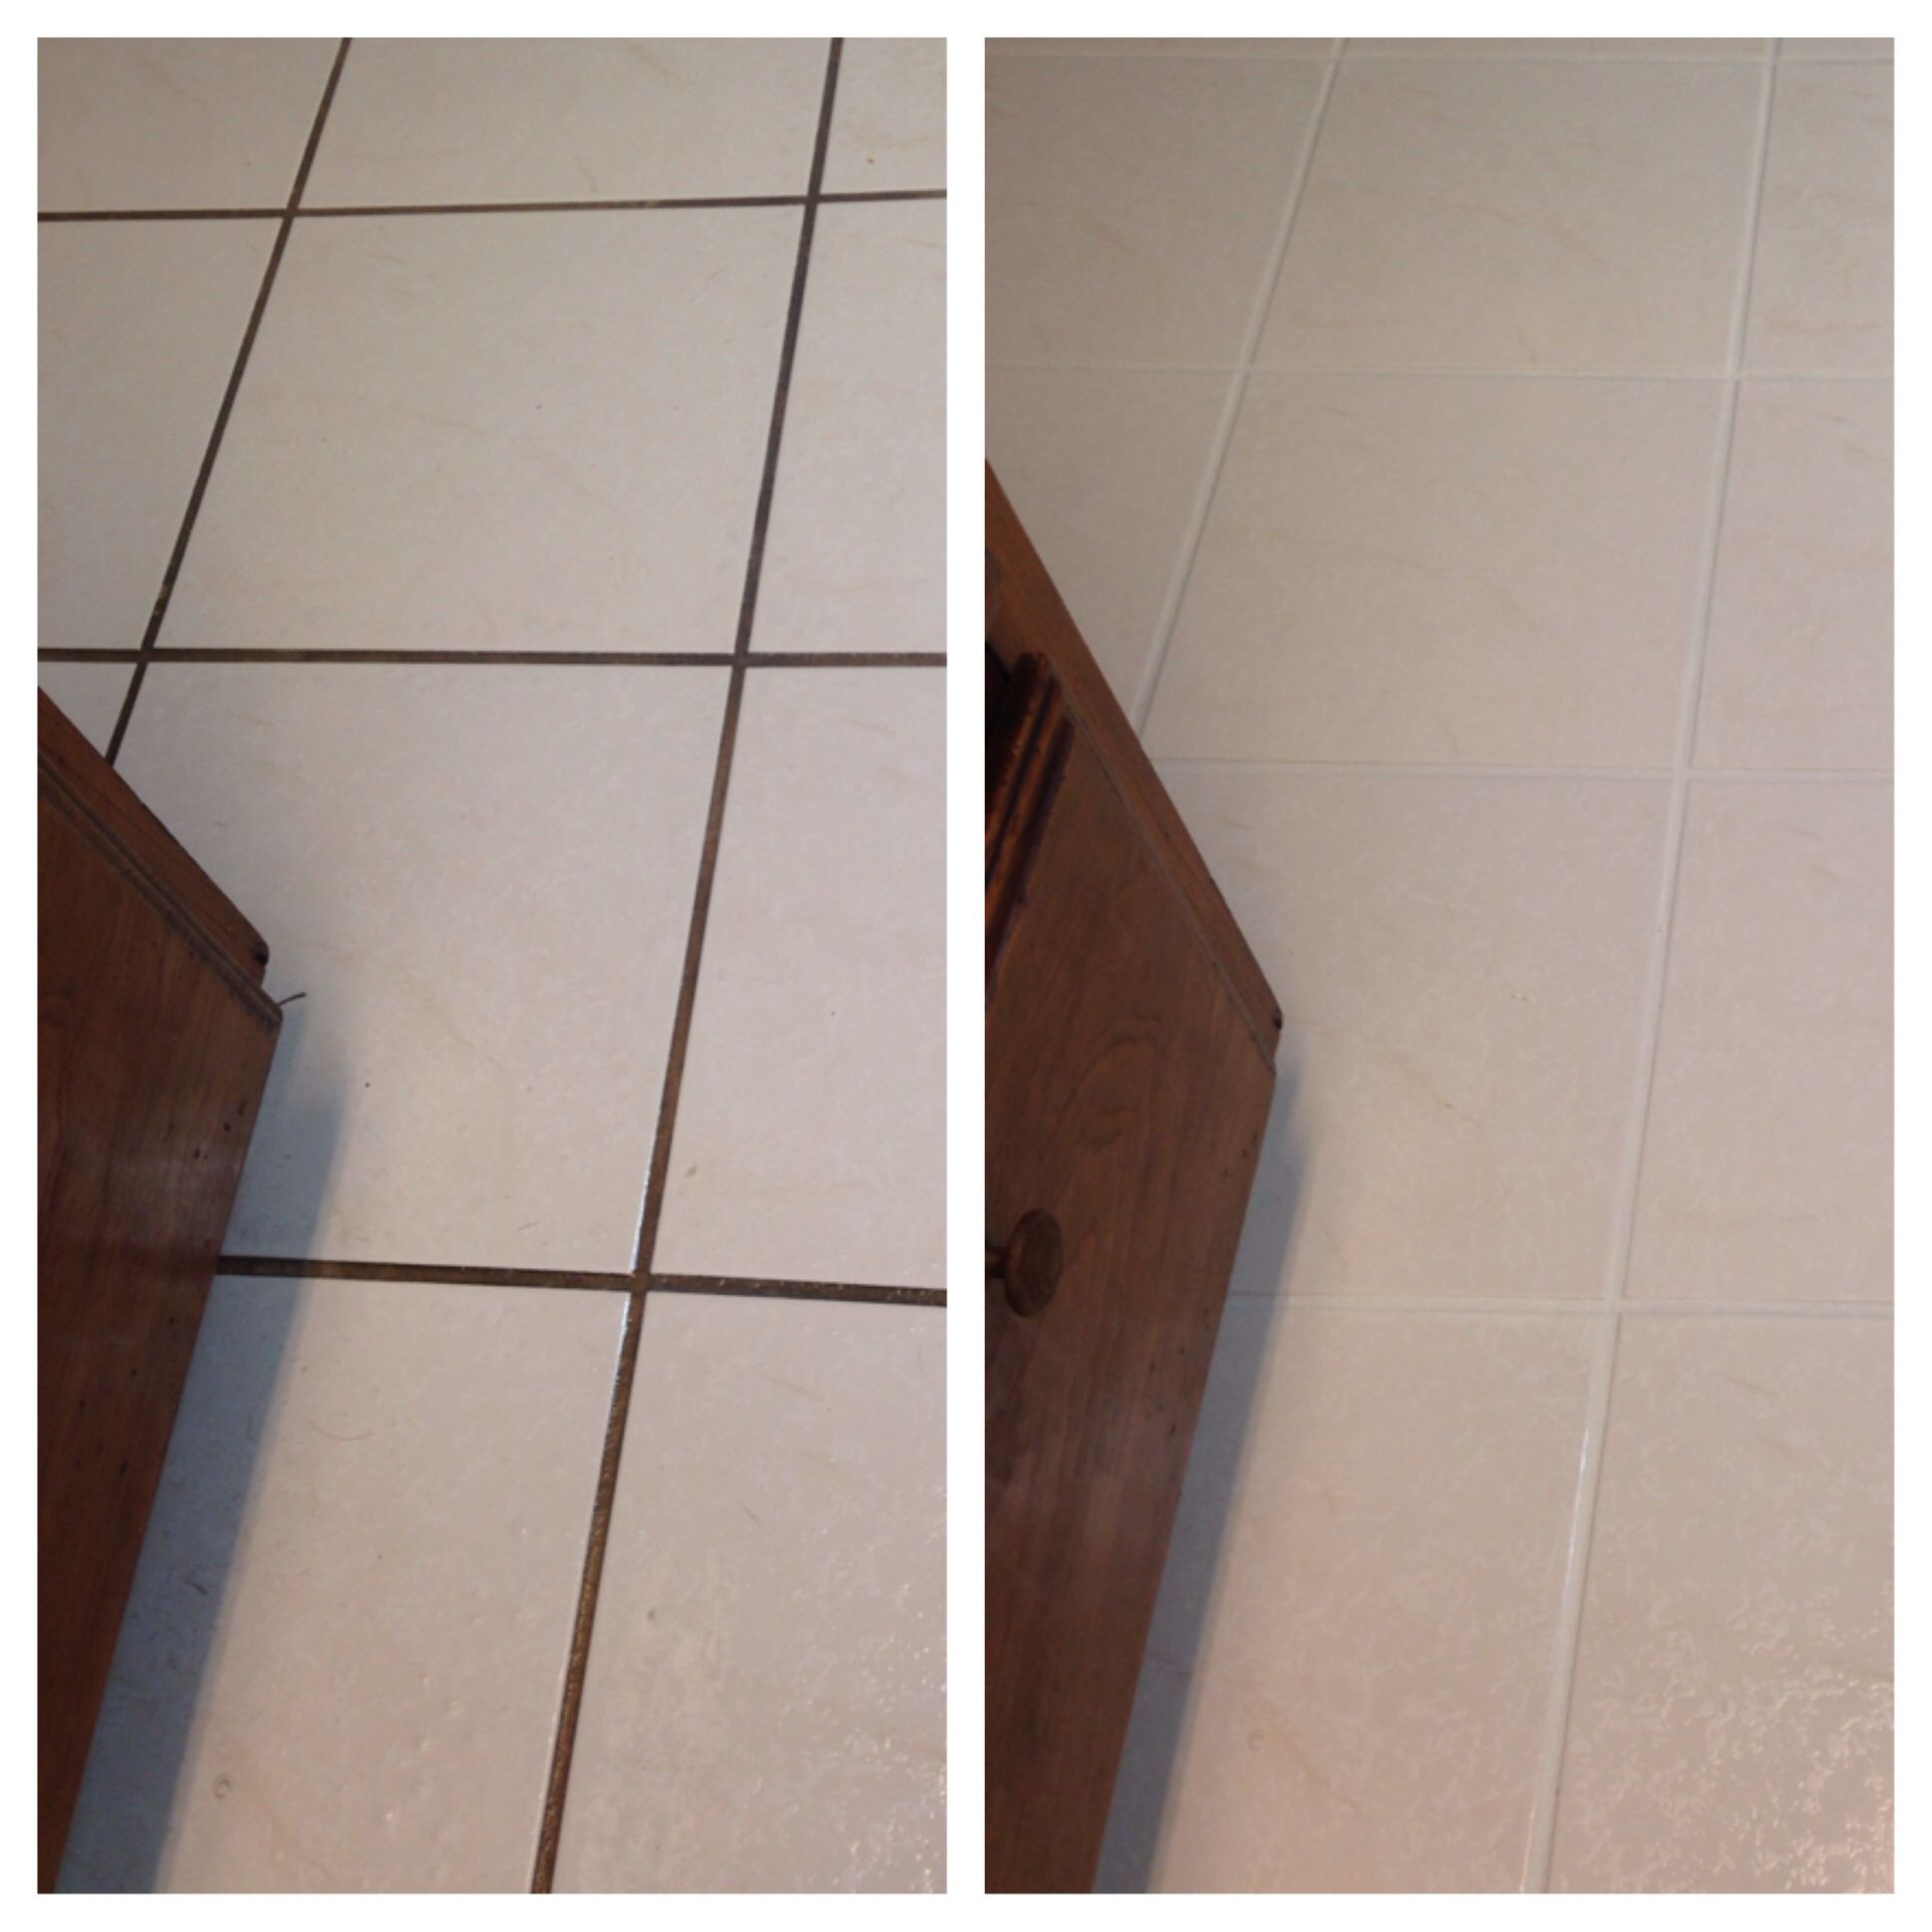 Grout Before And After Using Resolve Carpet Cleaning Spray And Then - Clean grout before sealing